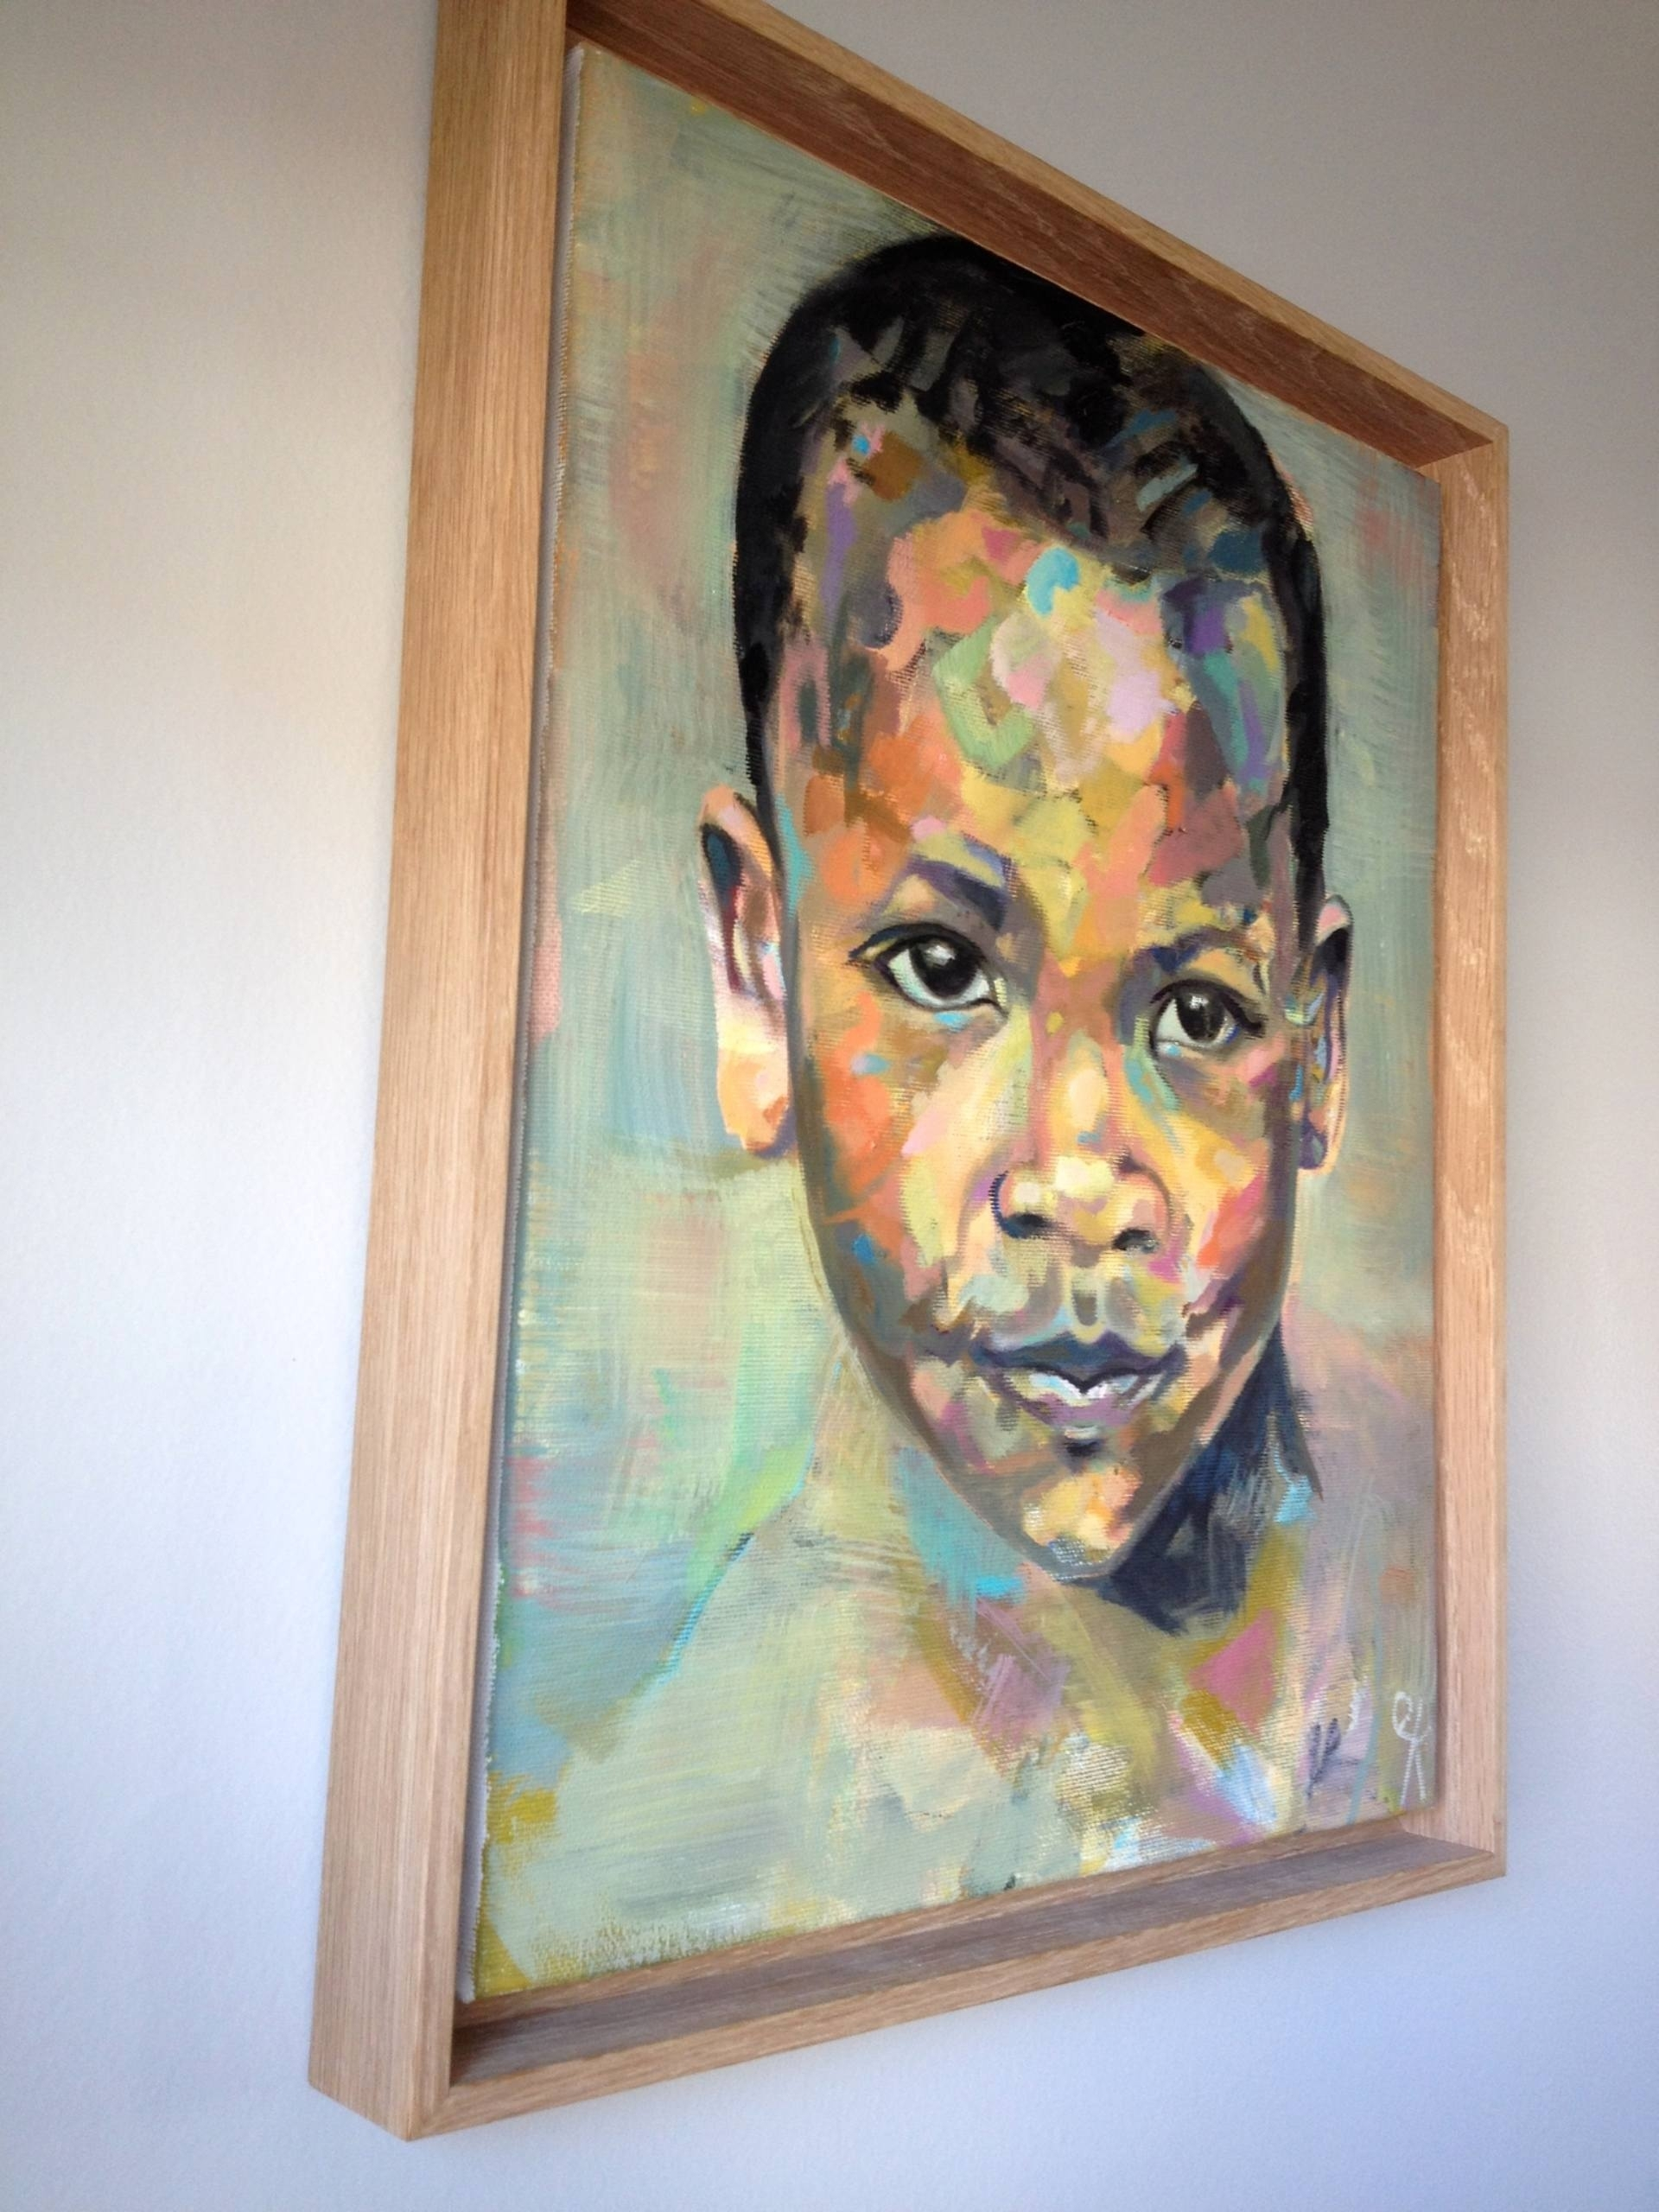 Saatchi Art: Child In The Market – Sold Paintingemily Kirby Intended For Latest Kirby Abstract Wall Art (View 11 of 20)